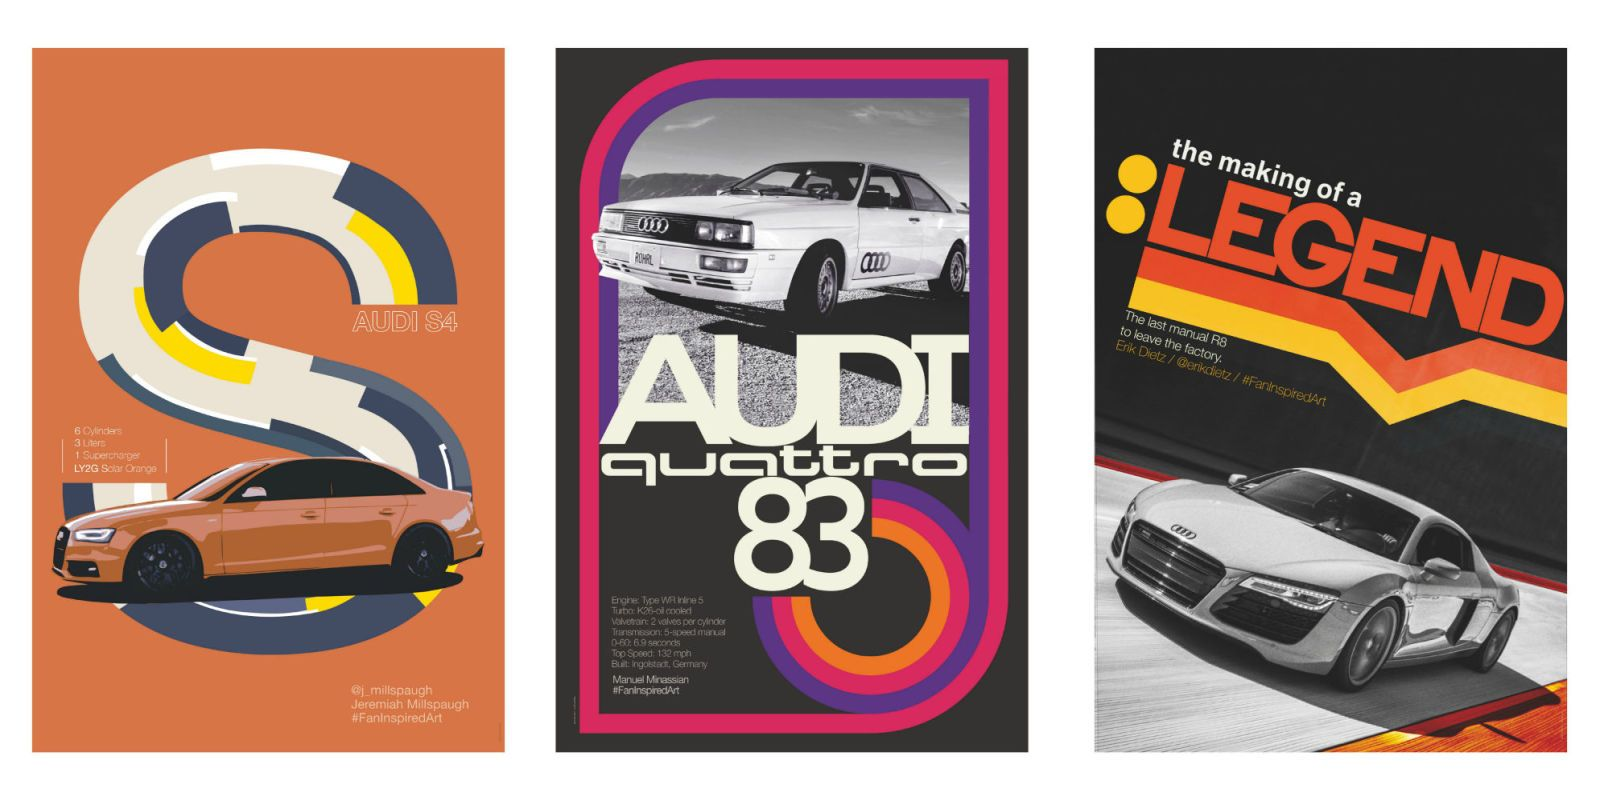 Audi Used Fan Photography to Make Rad Retro Posters